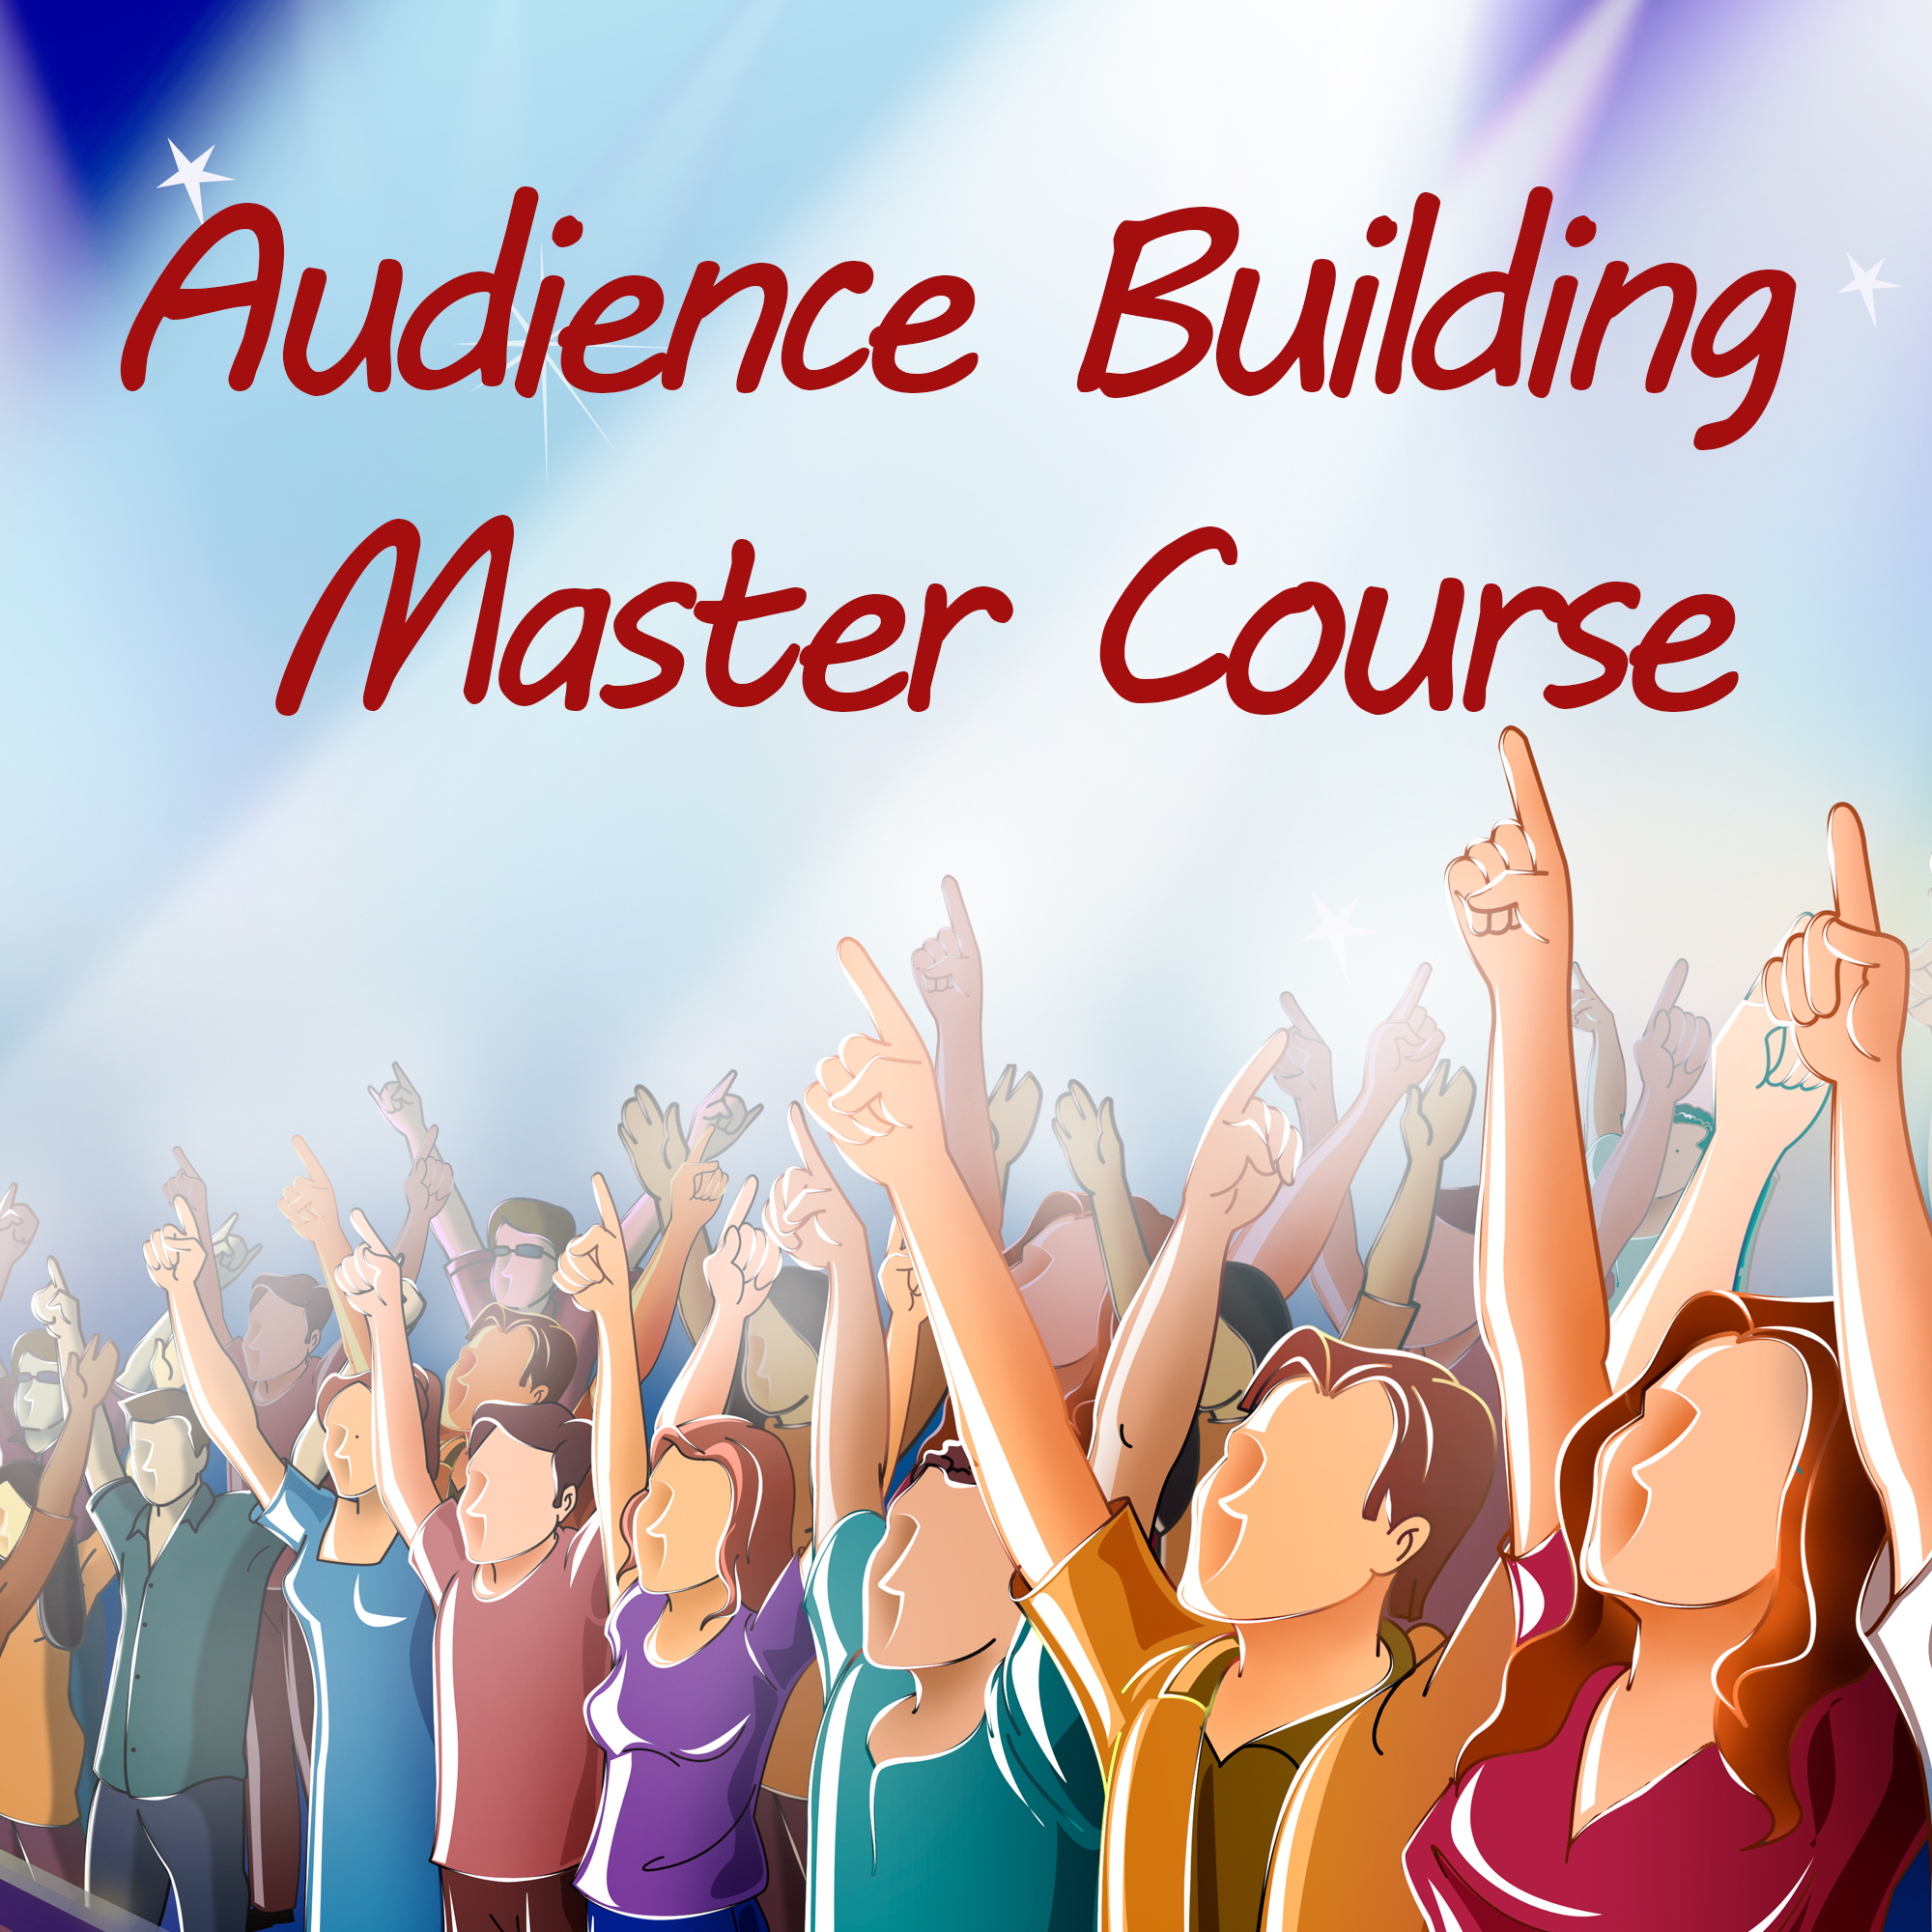 Audience Building Master Course